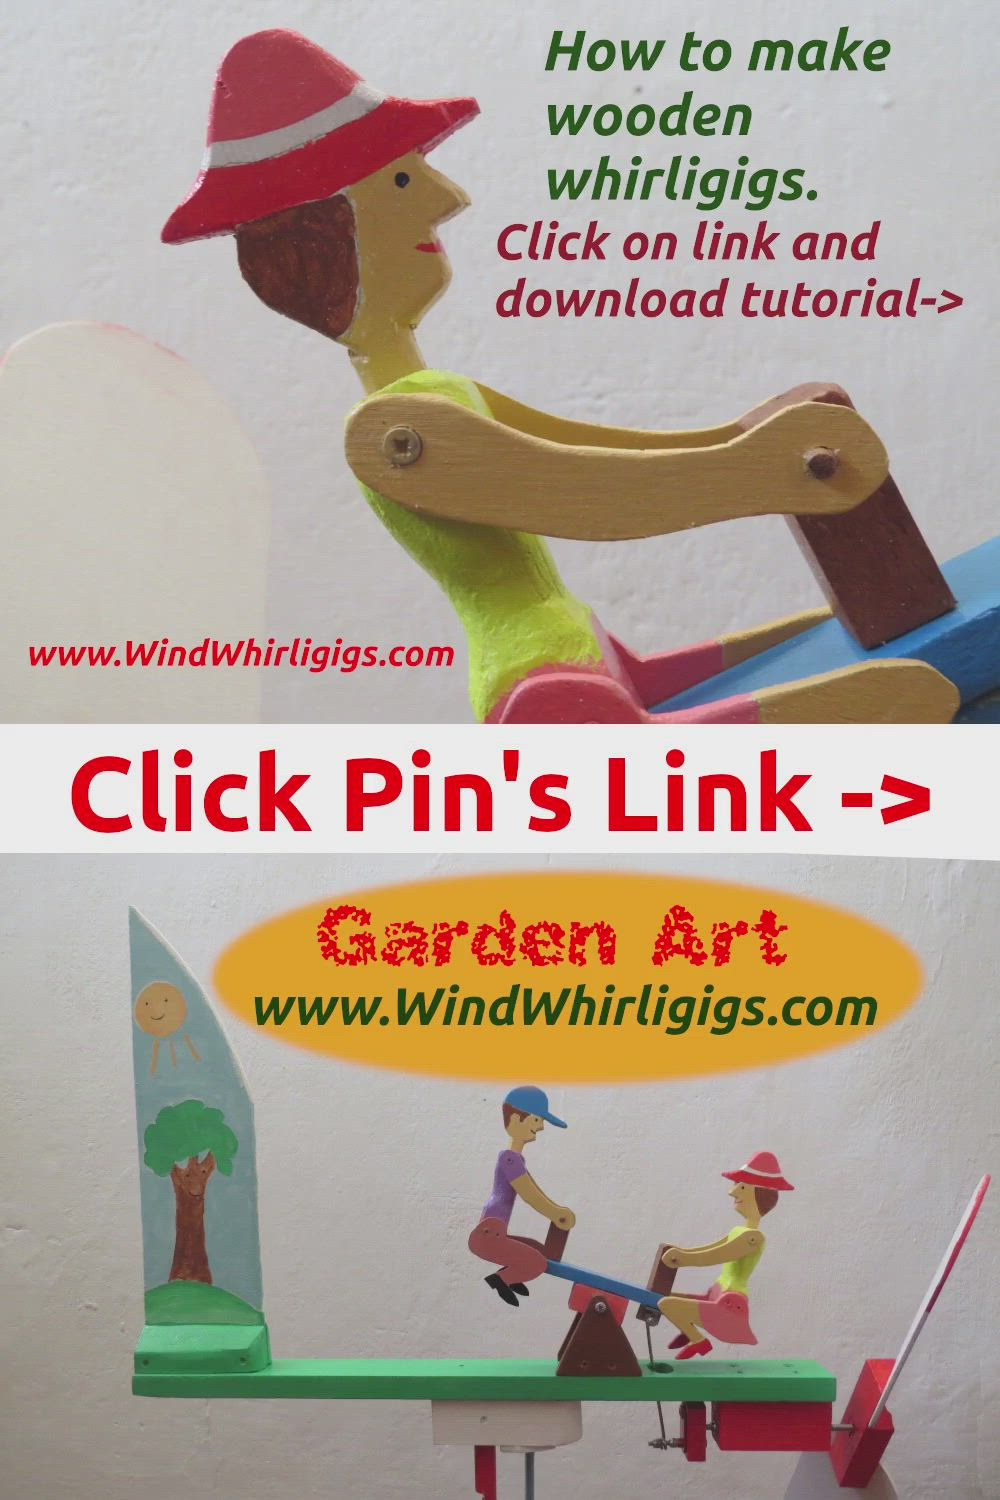 How To Make Seesaw Whirligig Digital Tutorial 467 Images Pdf Printable Template Video Video In 2021 Whirligigs Patterns Whirligig Hobby Lobby Decor